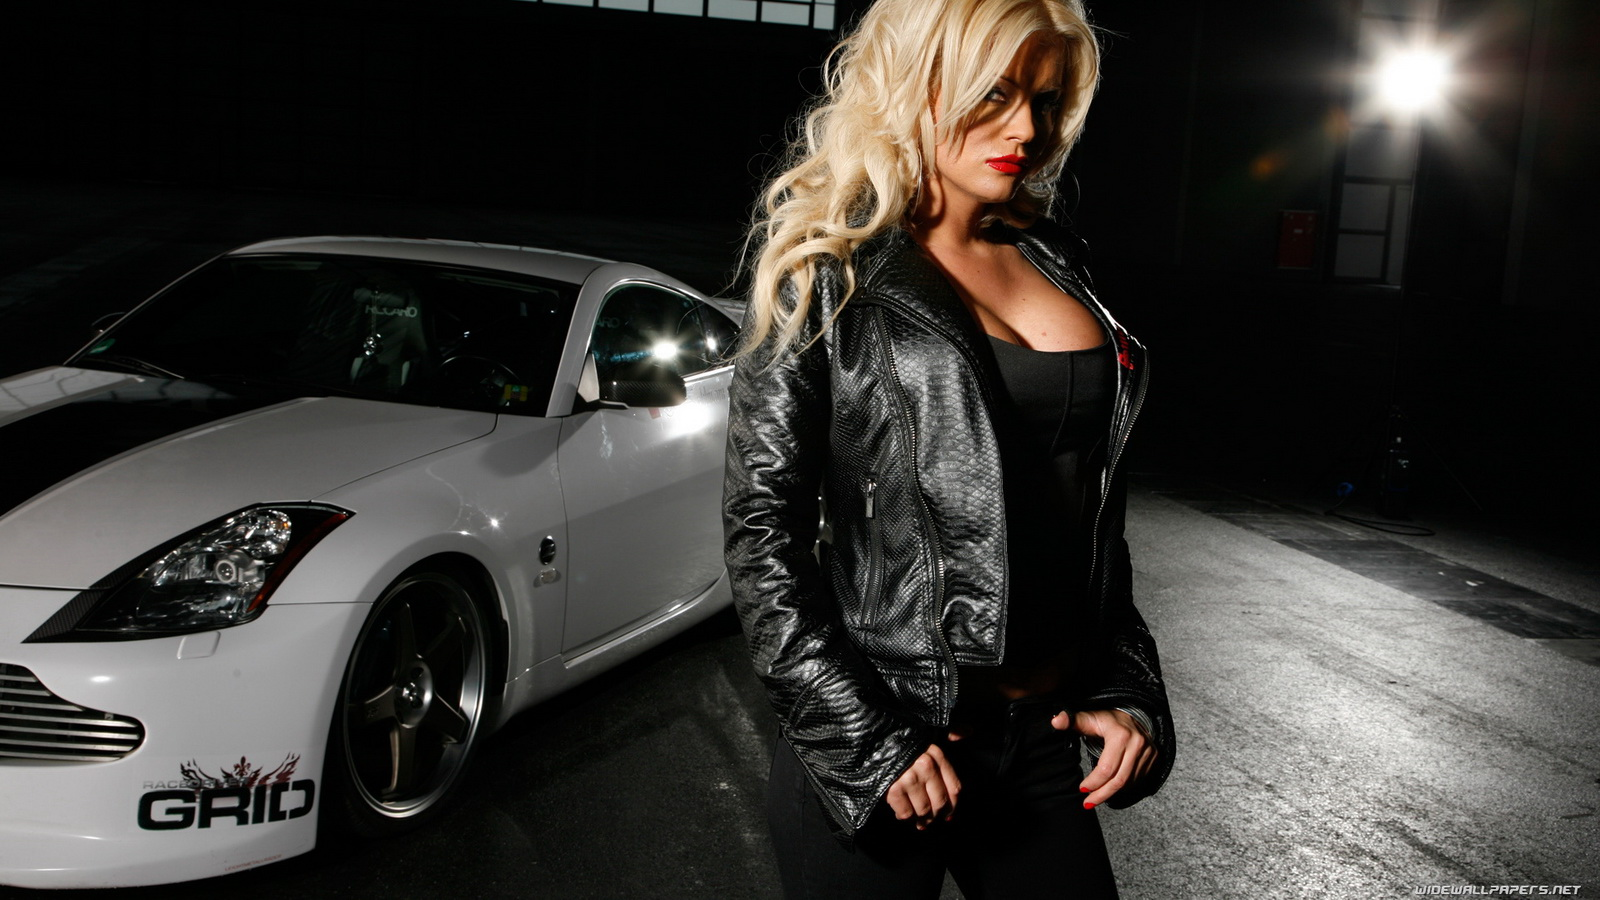 girls and cars hd 7